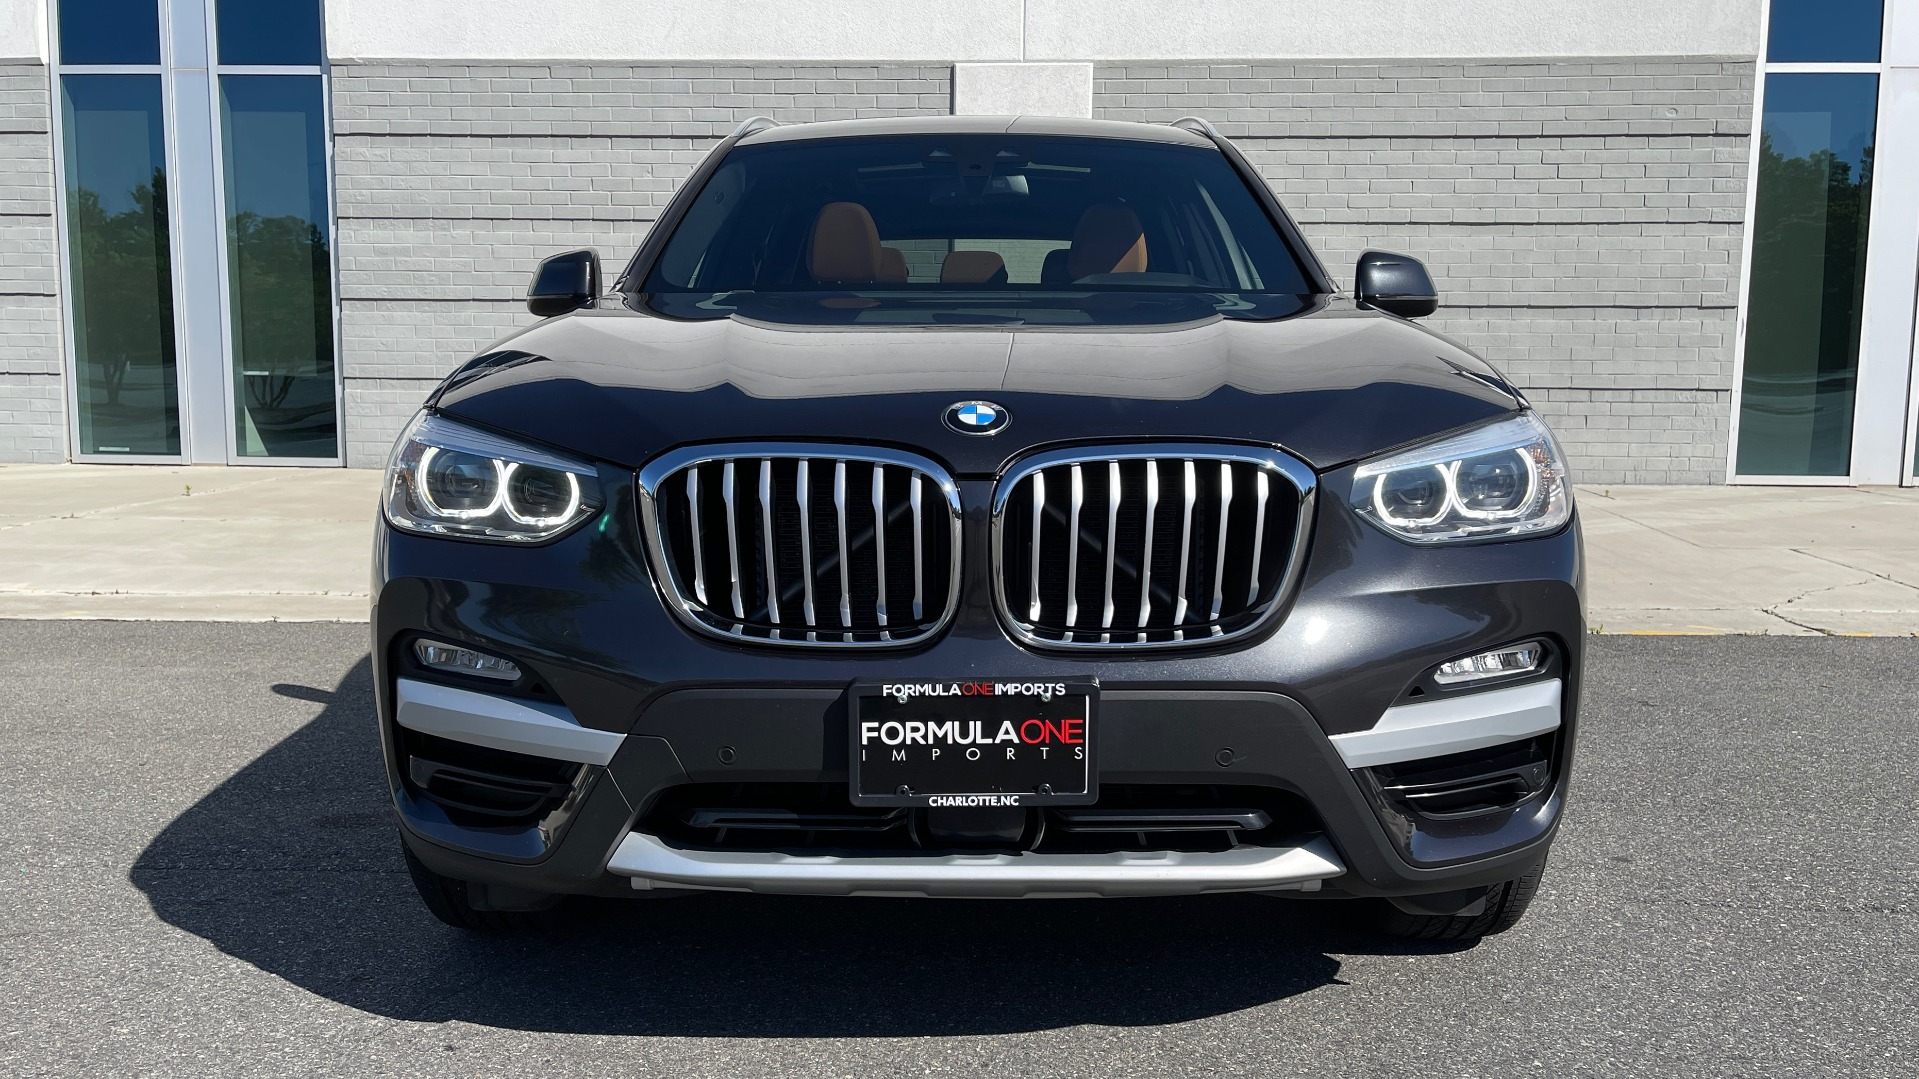 Used 2018 BMW X3 XDRIVE30I PREMIUM / NAV / DRVR ASST PLUS / CONV PKG / SUNROOF / REARVIEW for sale $33,795 at Formula Imports in Charlotte NC 28227 14